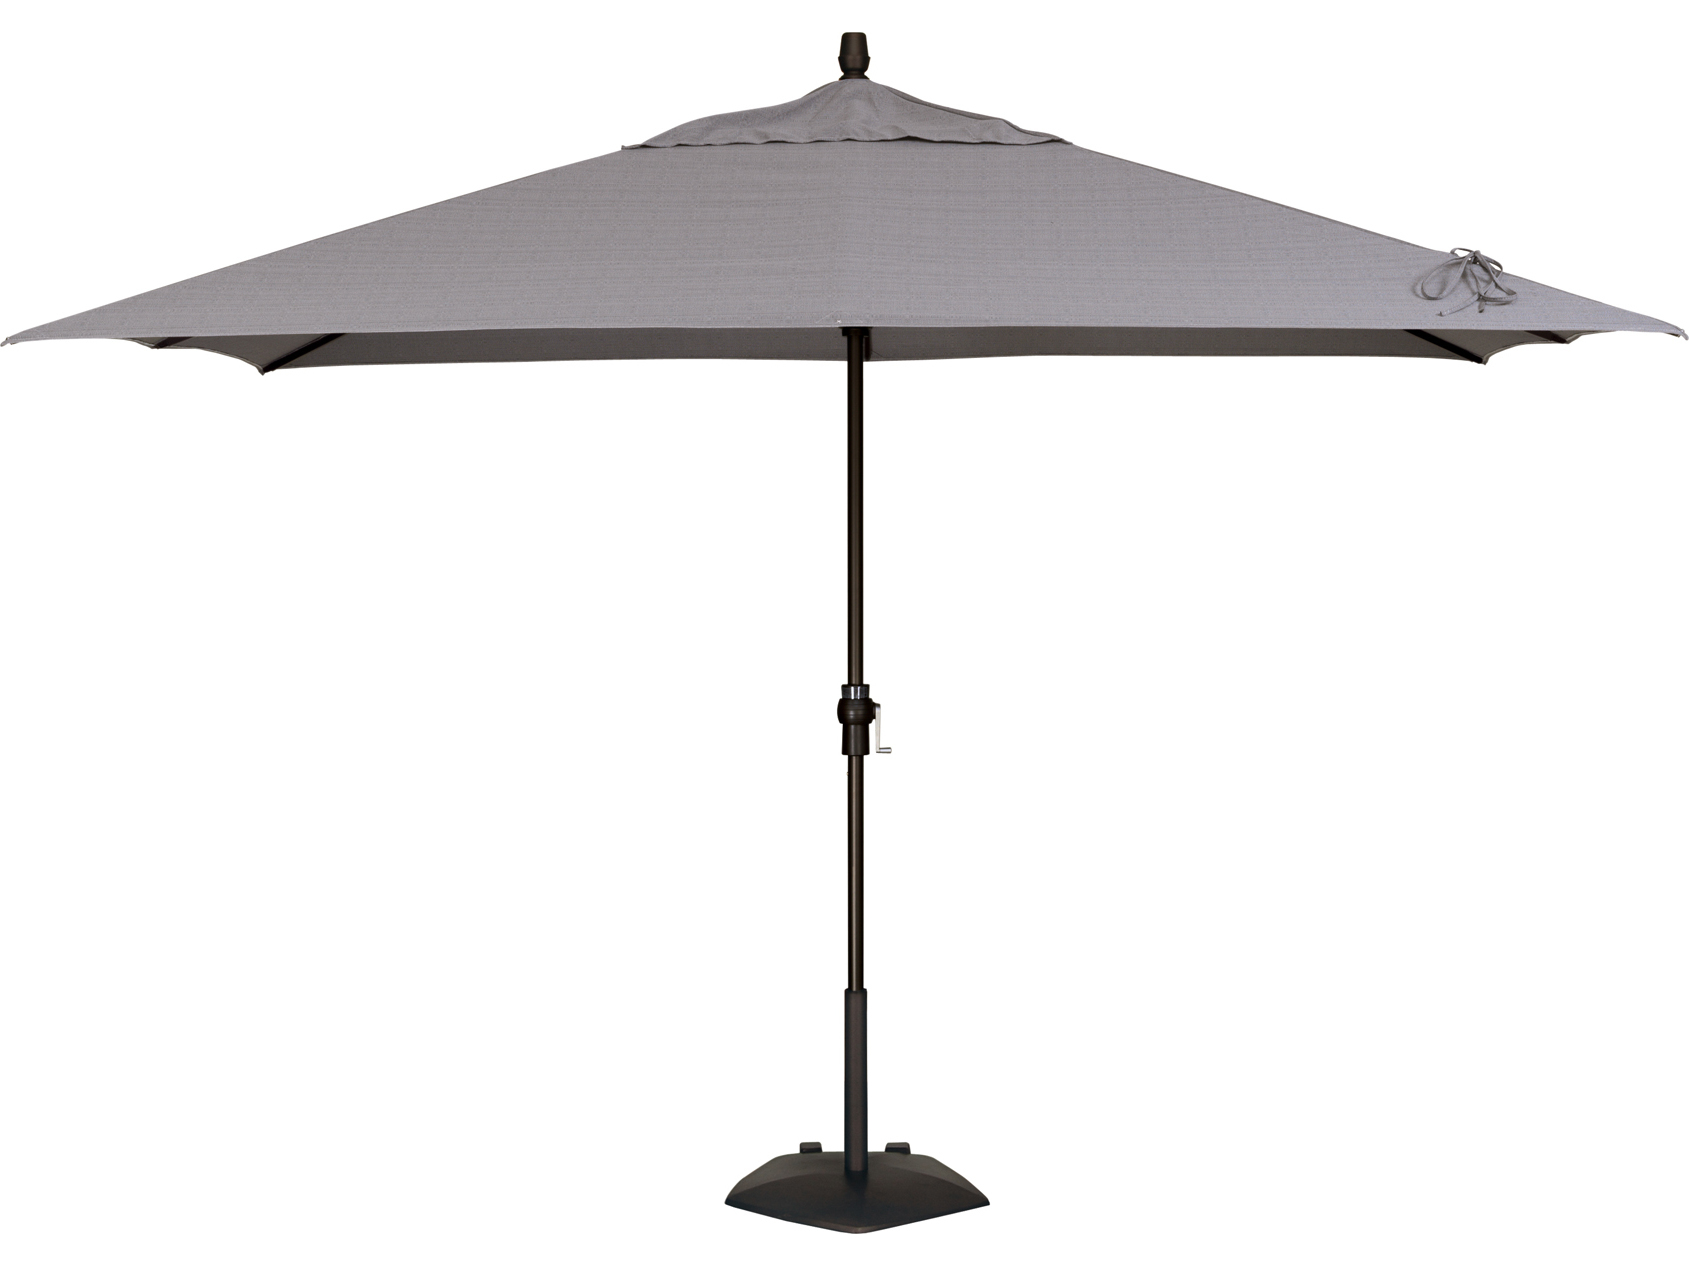 backyard world depot stool patio p offset market costco stunning sunbrella accessories home lowes garden umbrella nautica for umbrellas best cantilever outdoor